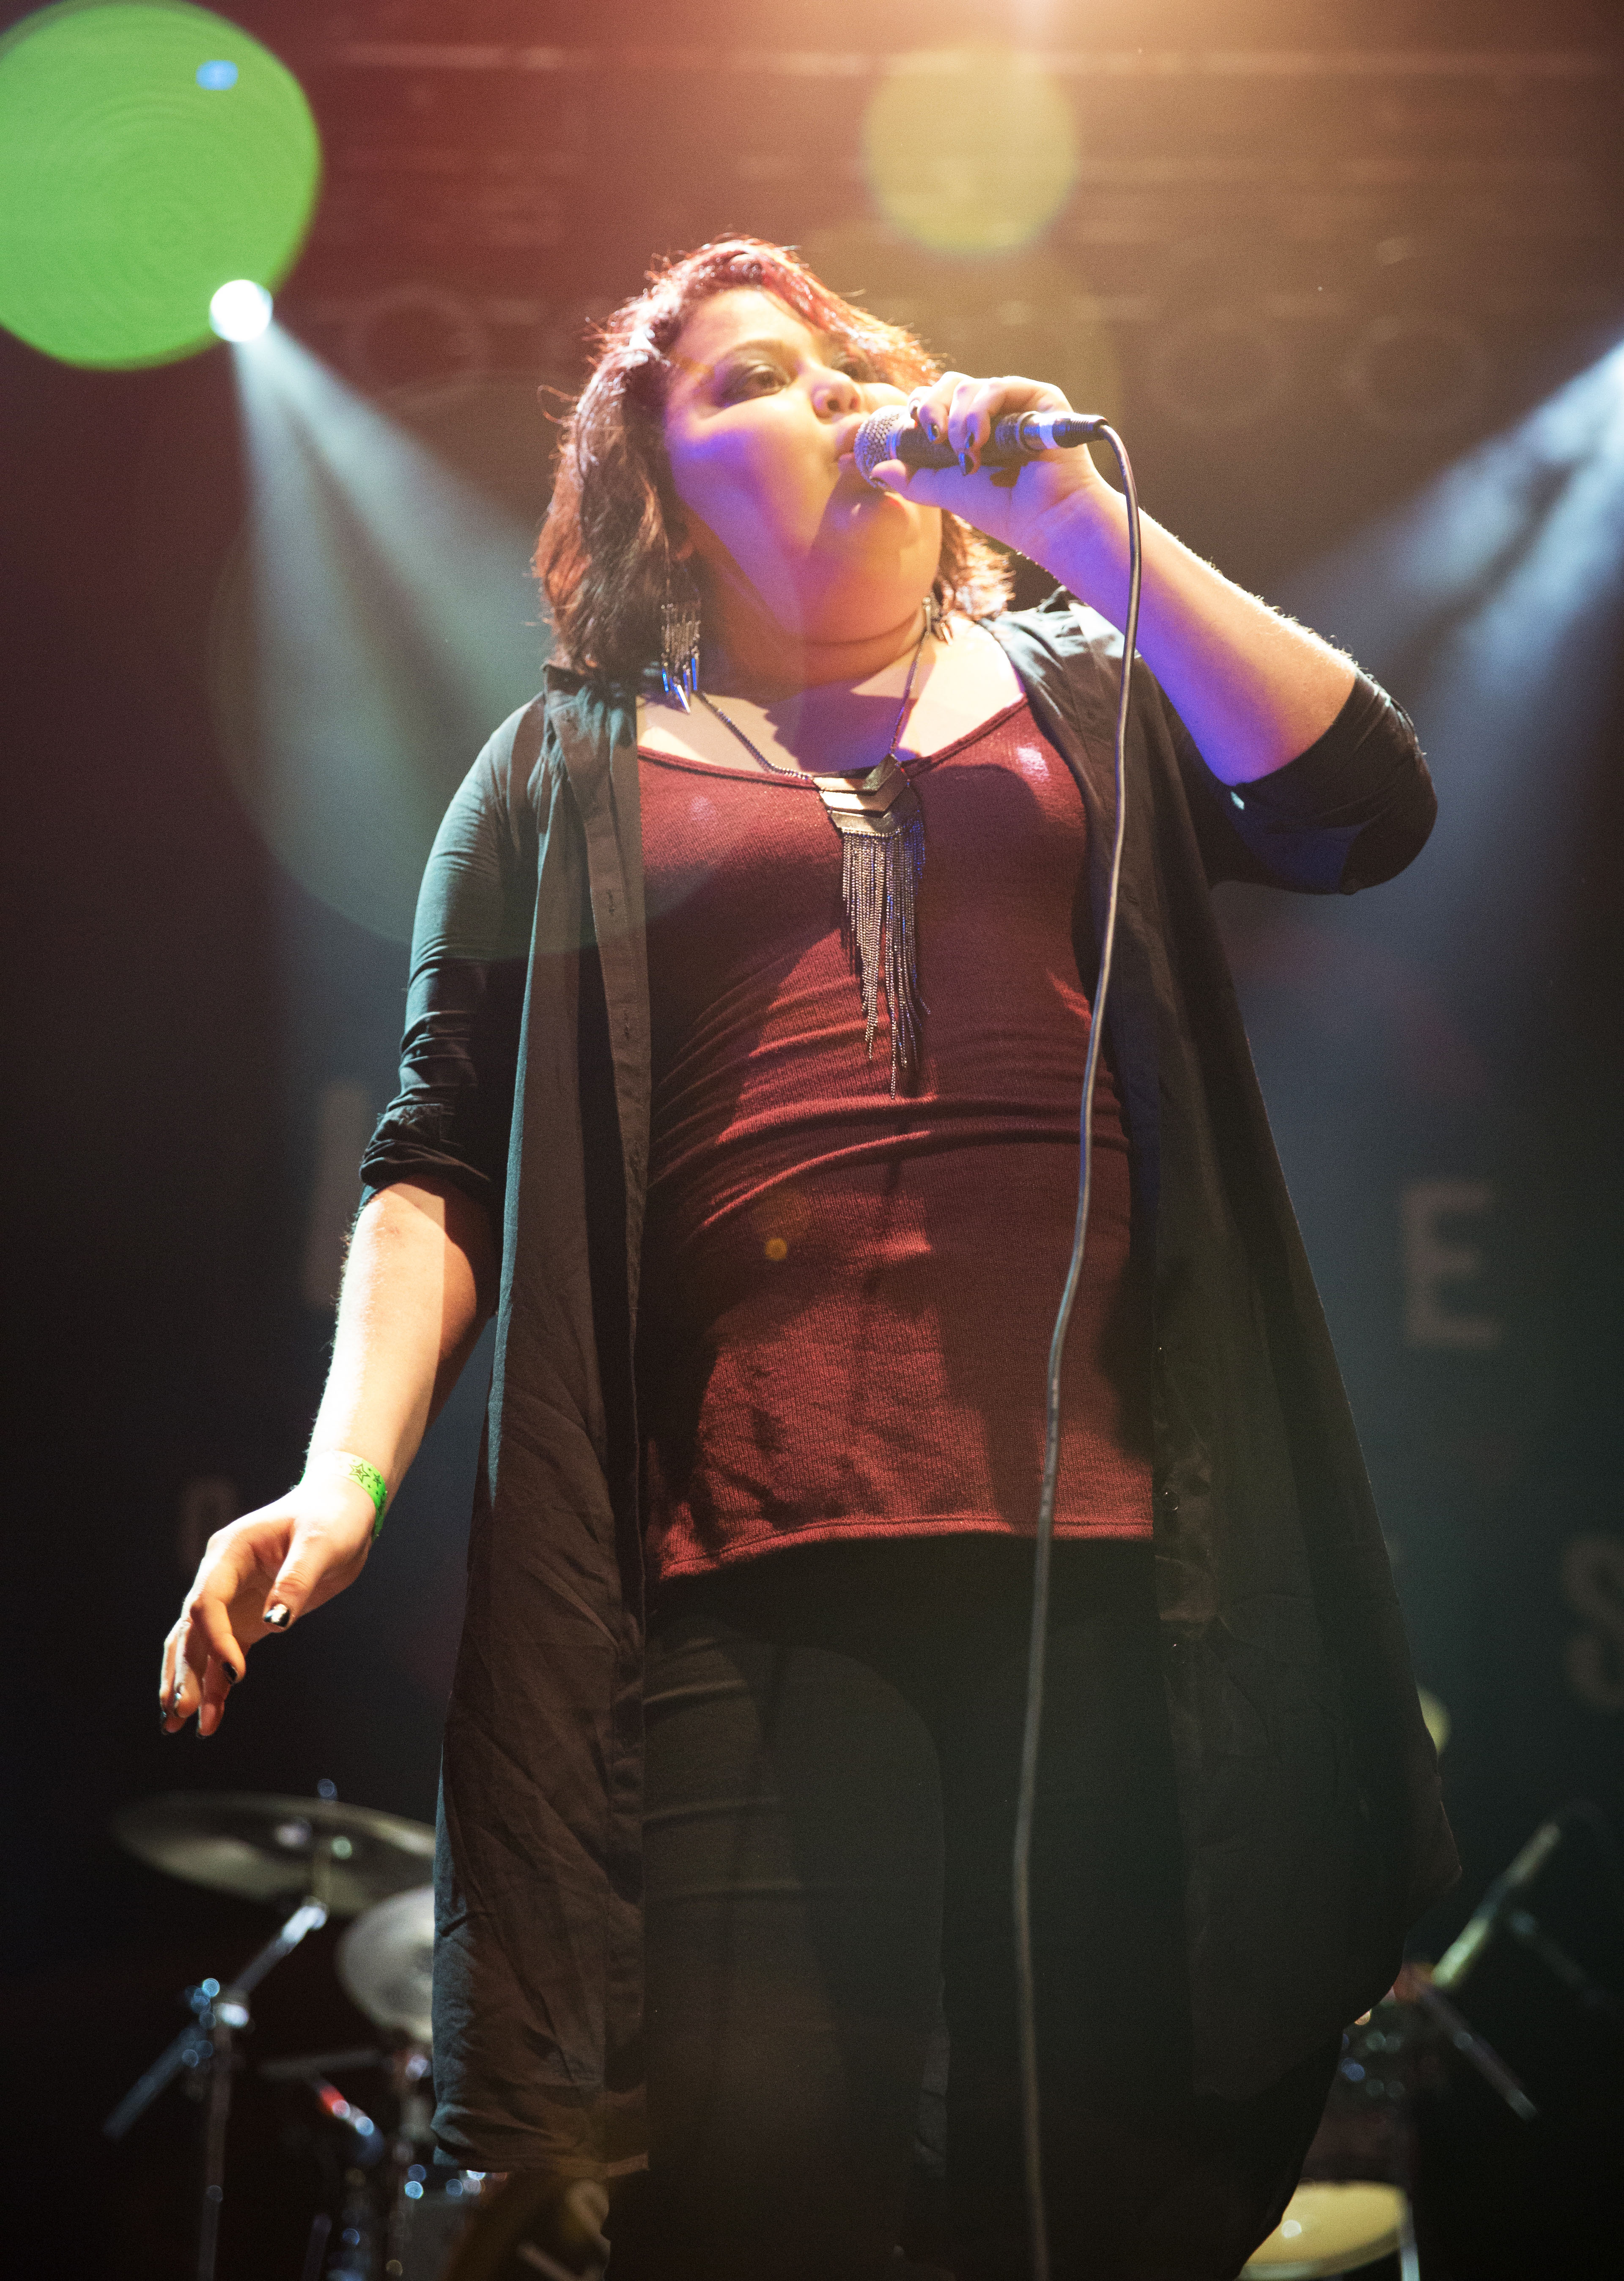 Make-A-Wish Orange County and the Inland Empire granted 15-year-old Victoria Venega's wish to be a singer with the help of the Los Rios Rock School. Photo: Gemina Gowdy